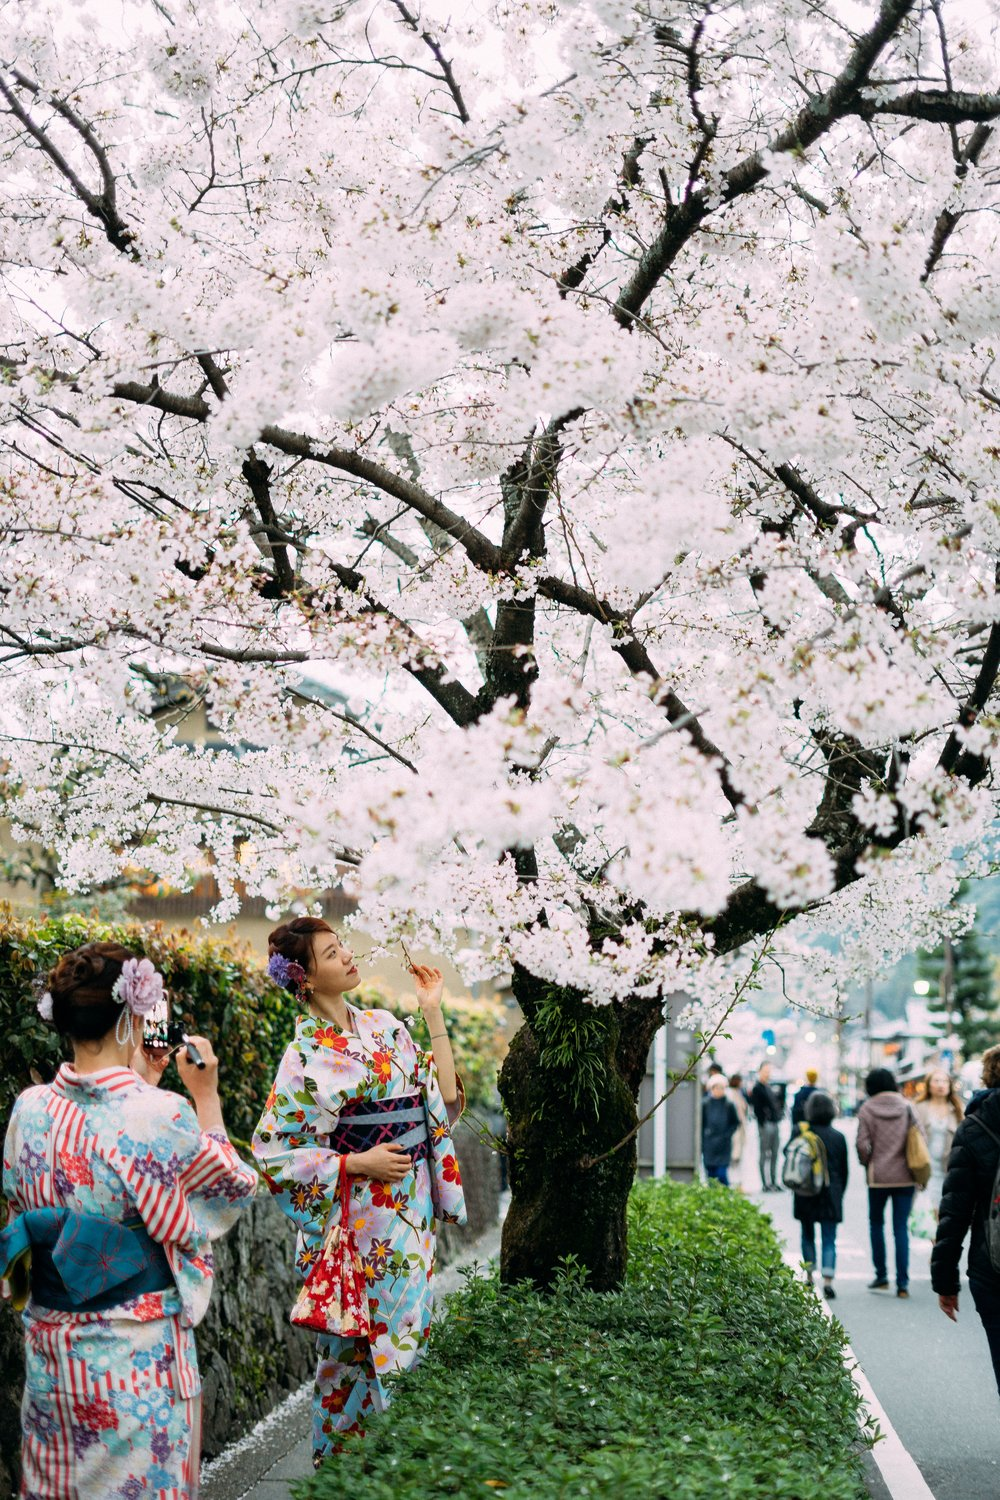 Tourists flock to Japan during Cherry Blossom season. Photo by  bady qb  on  Unsplash .